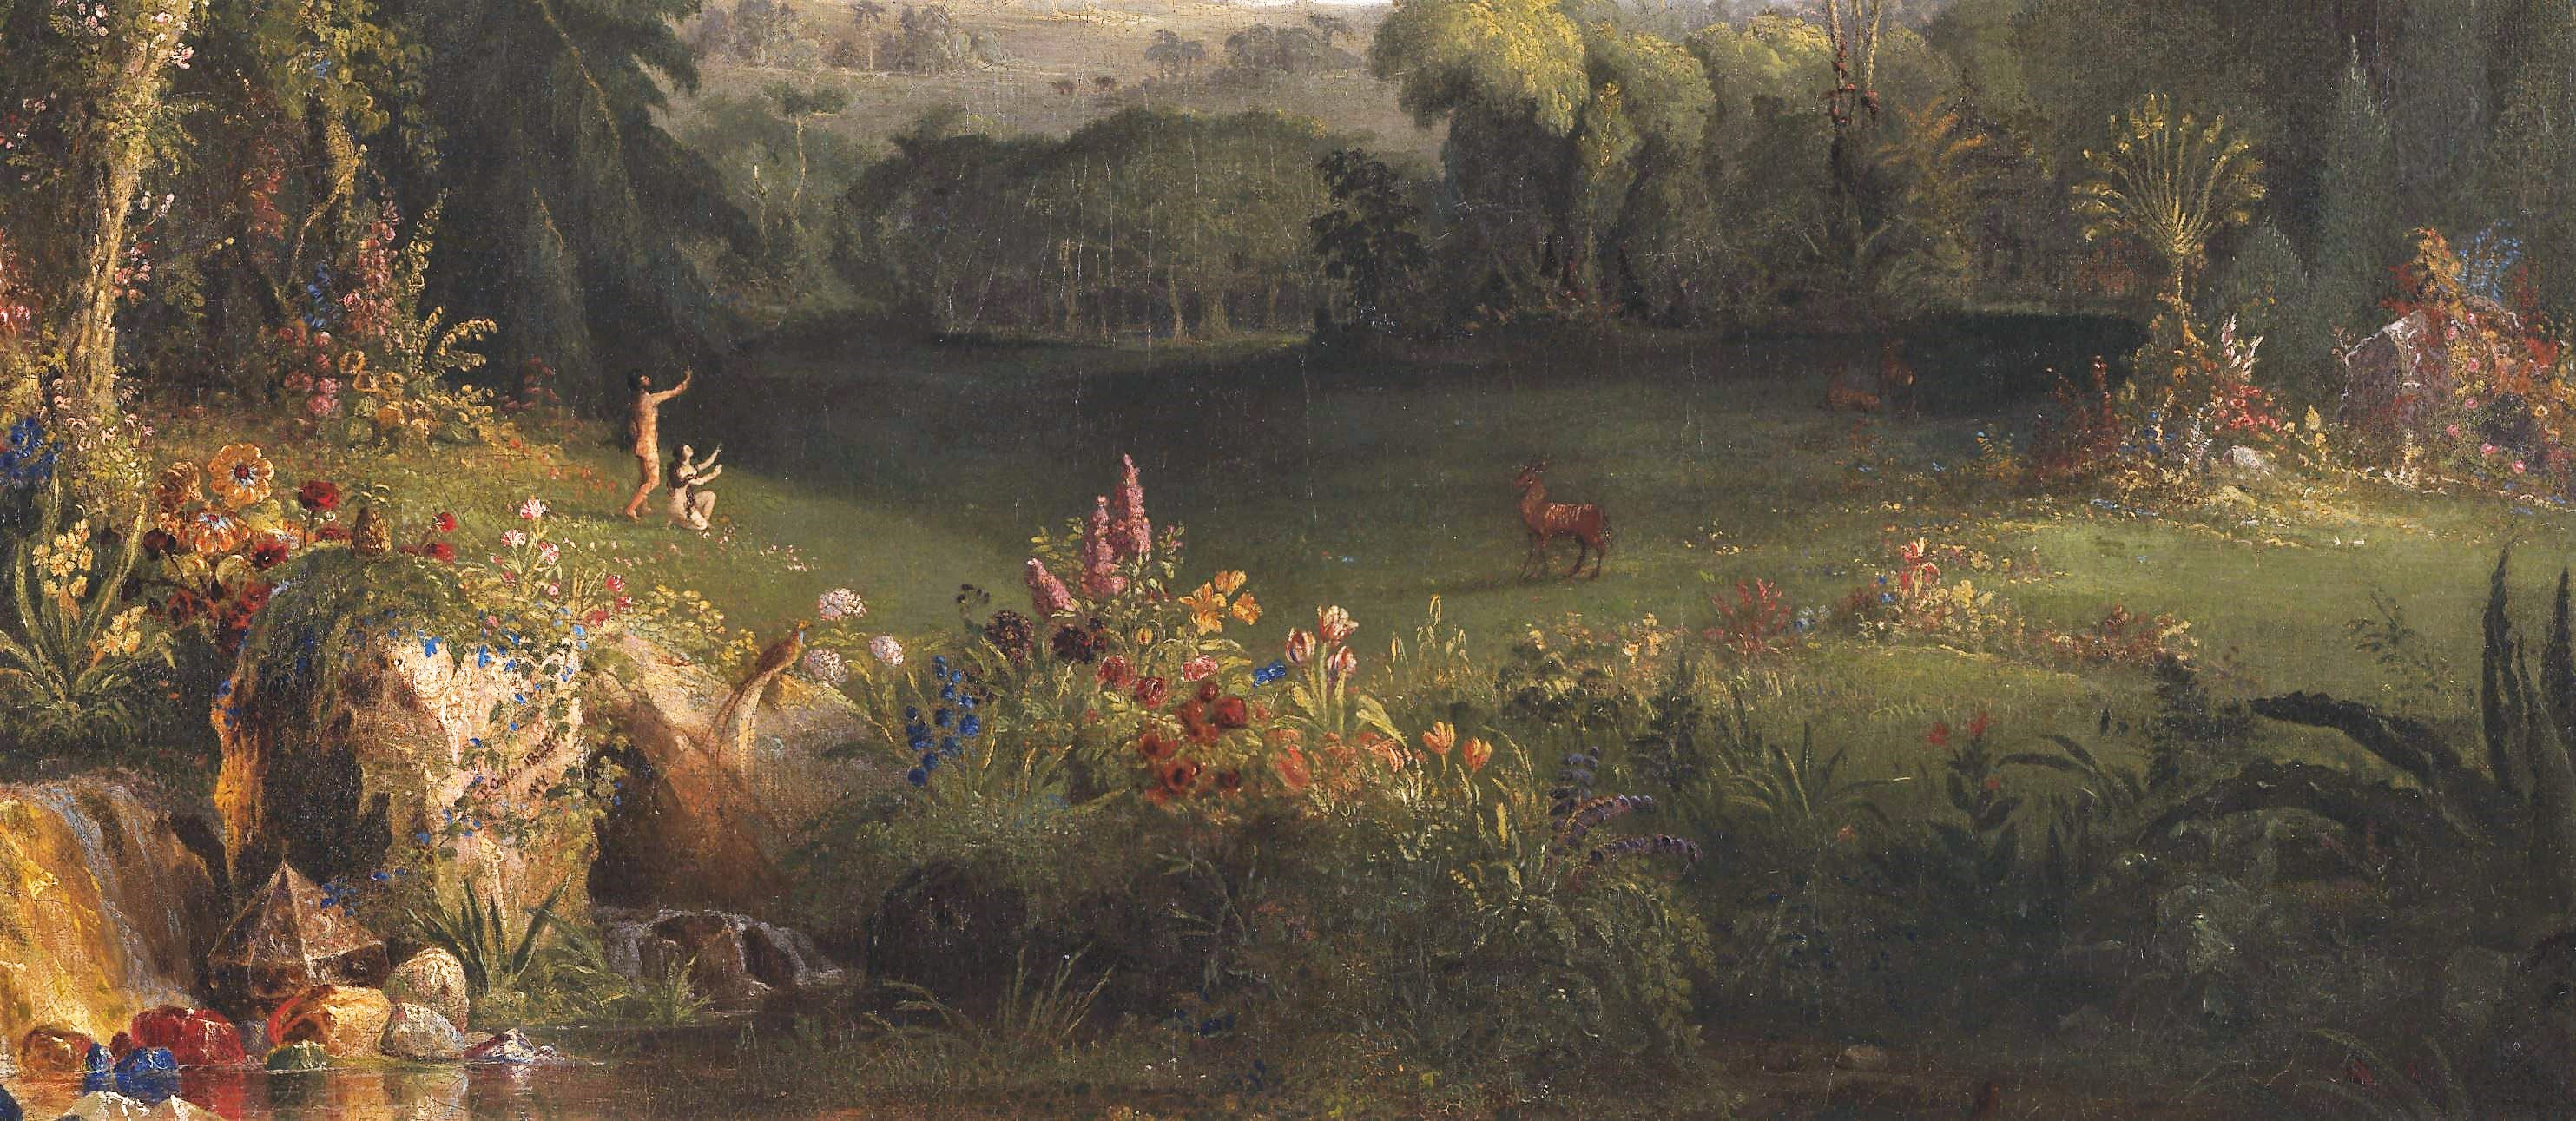 Cole 1828 The_Garden_of_Eden, Amon Carter Museum Fort Worth Texas 133,9 x 97,7 cm detail